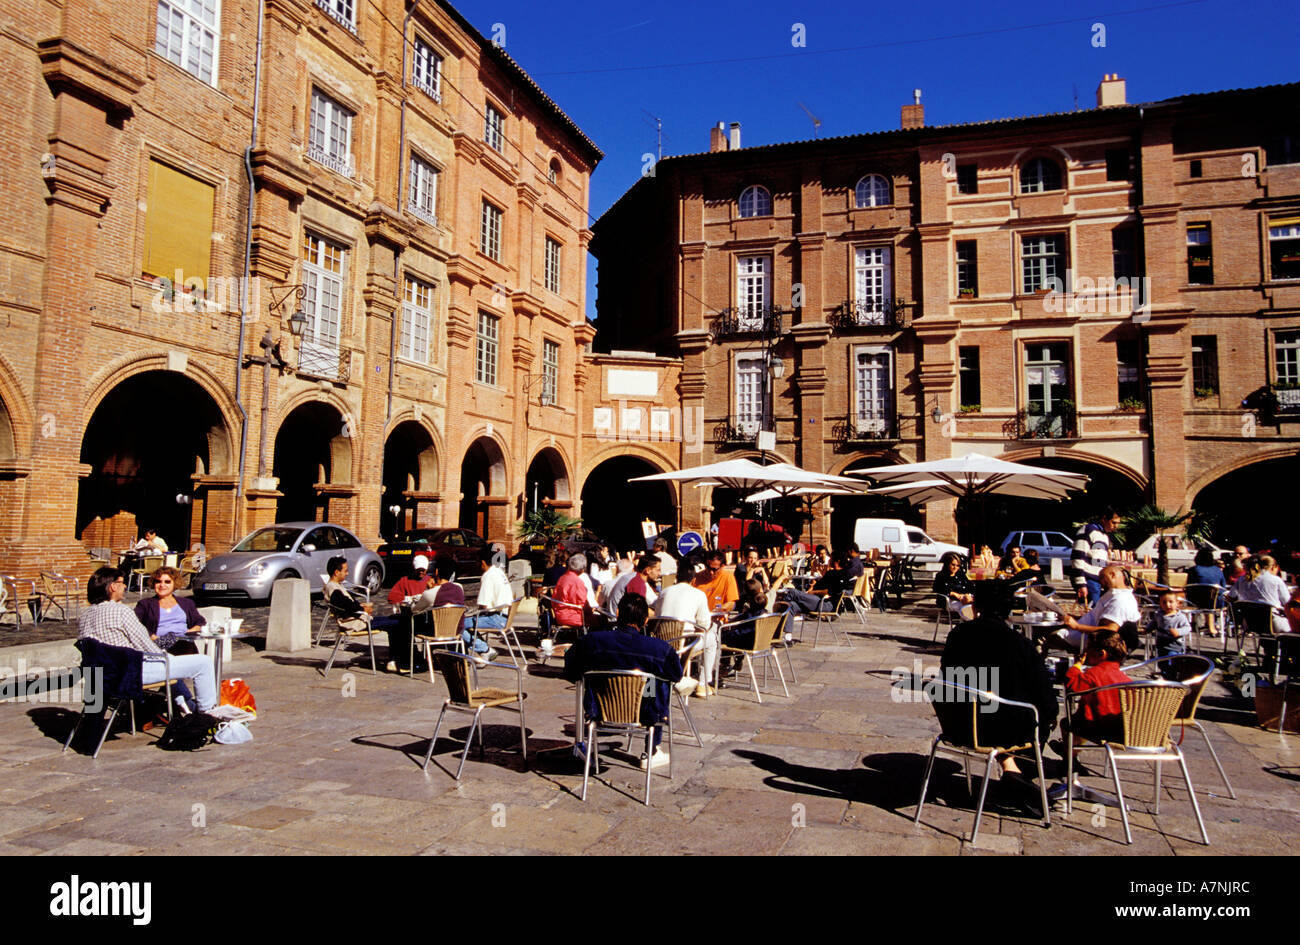 France, Tarn et Garonne, Montauban, cafe terraces on Place Nationale - Stock Image